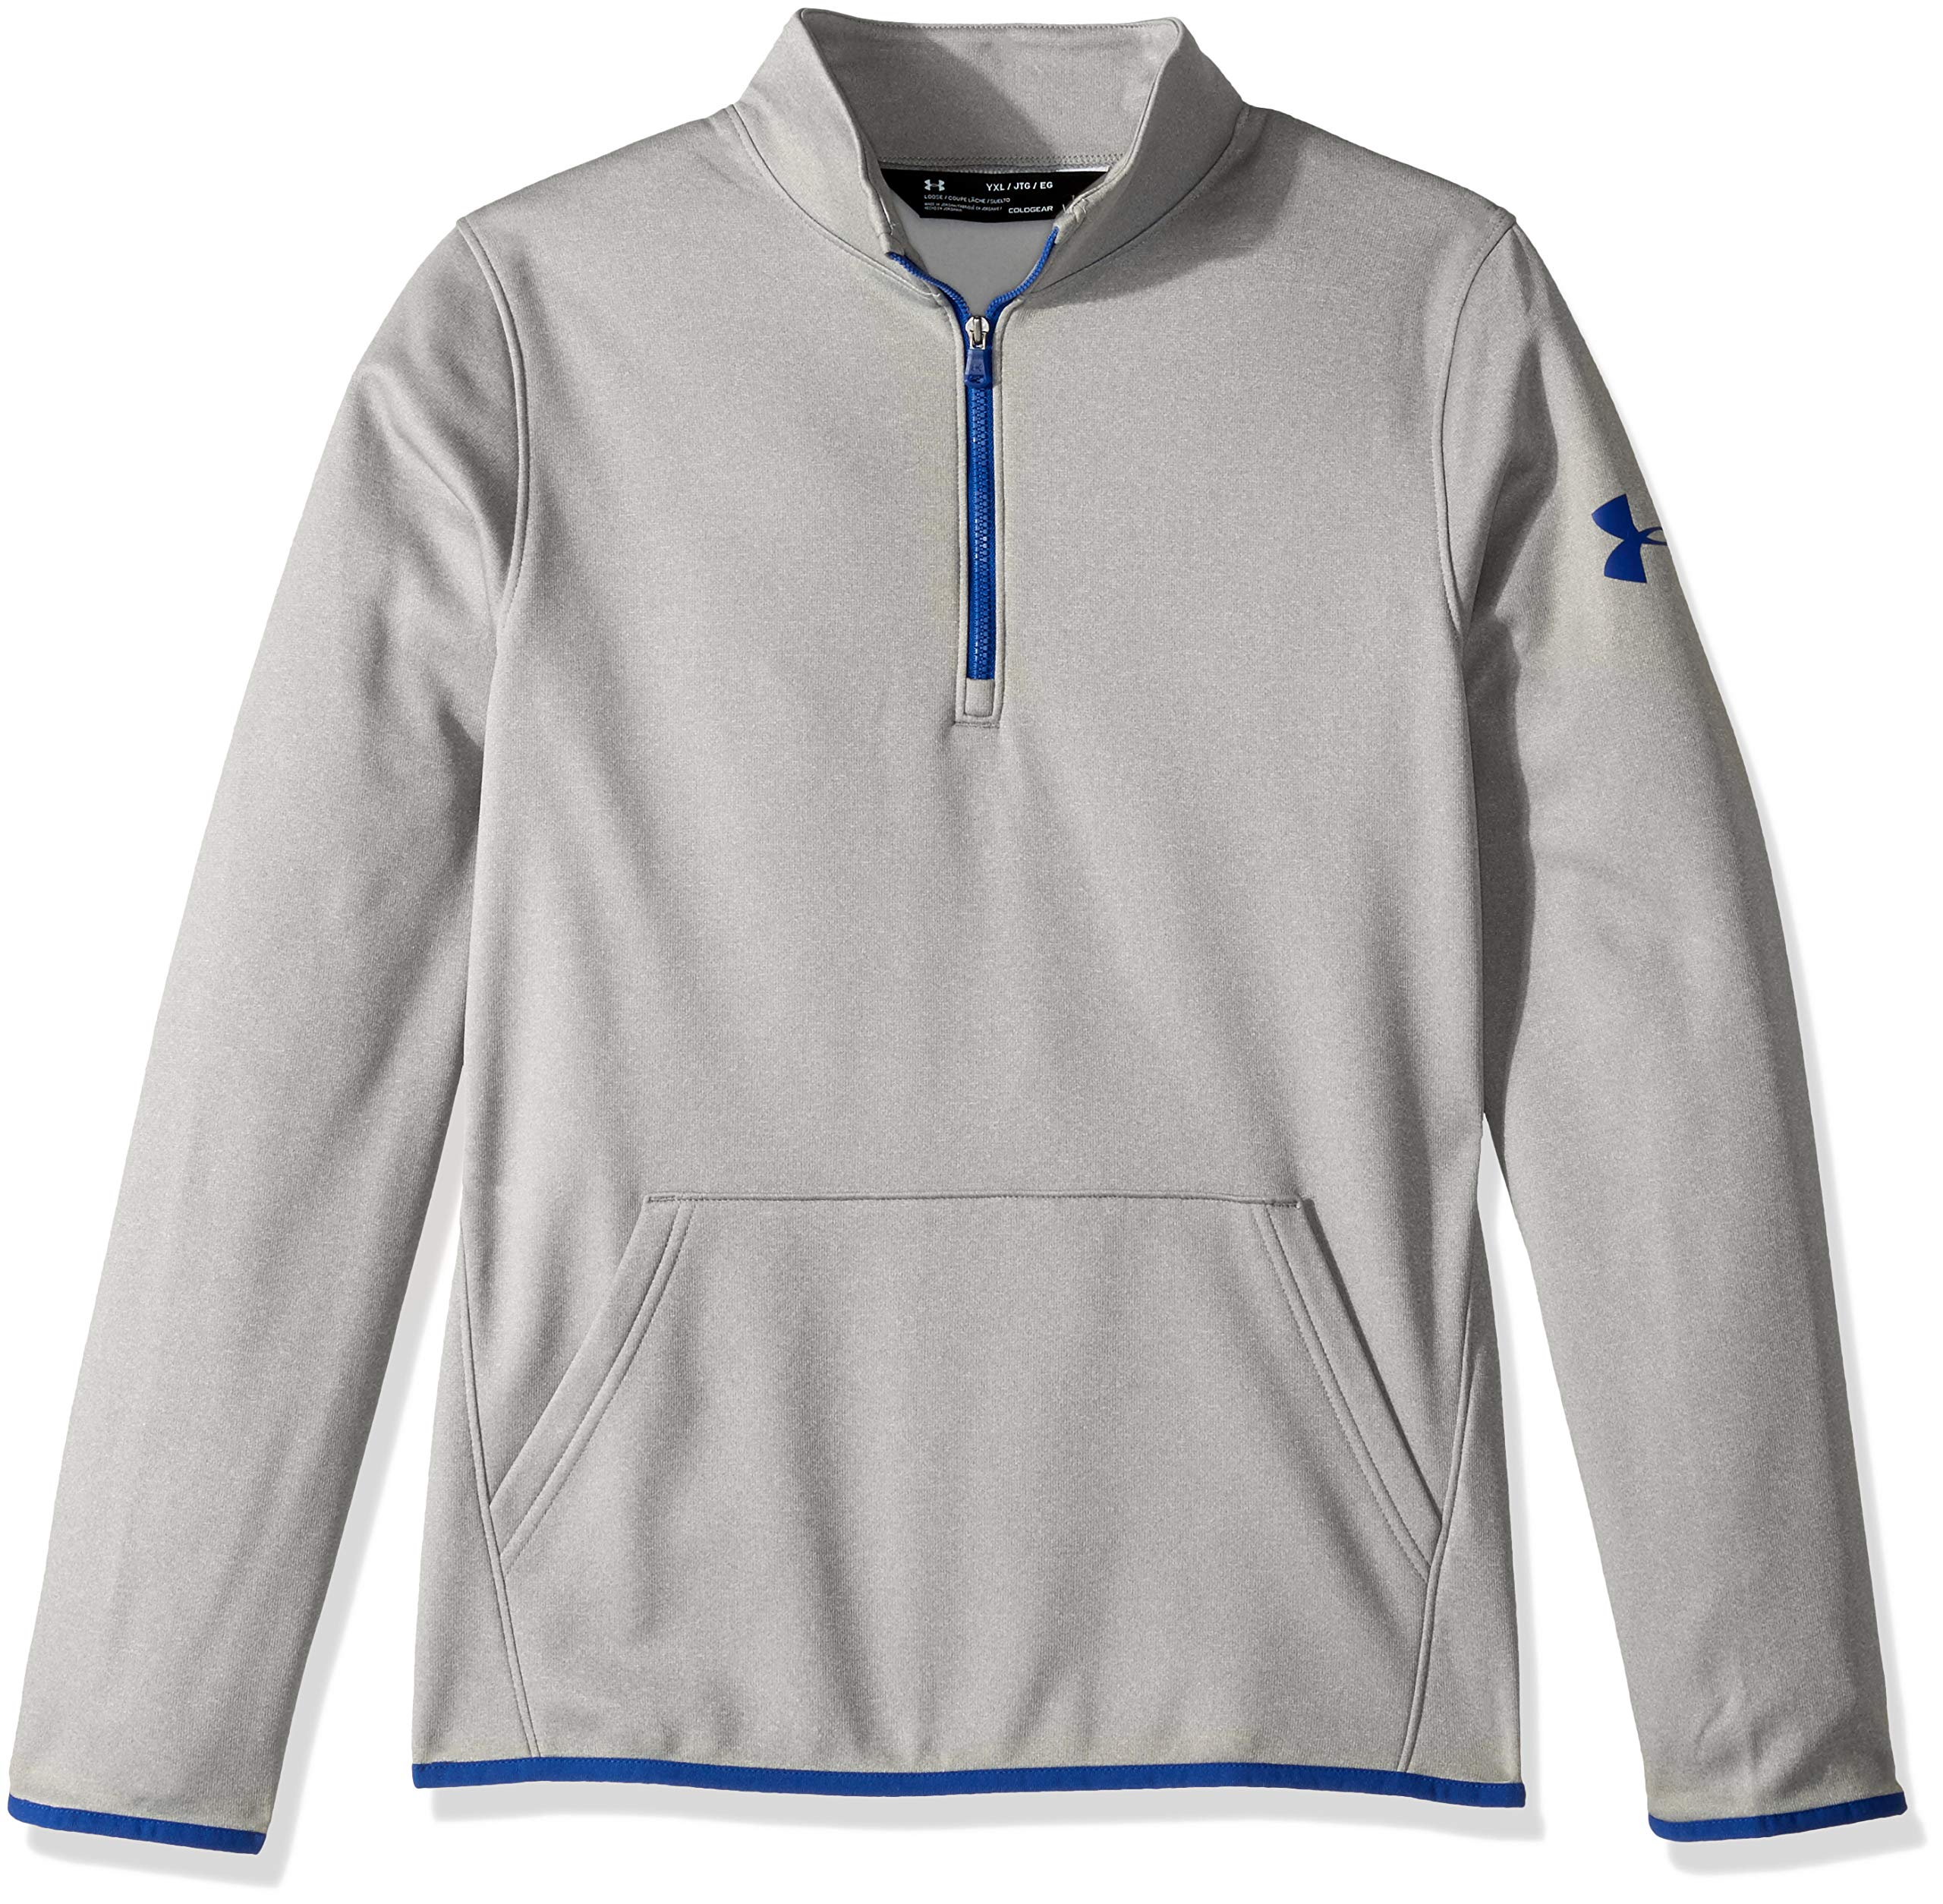 Under Armour Boys Armour Fleece 1/2 Zip, Steel Light Heather (035)/Royal, Youth X-Small by Under Armour